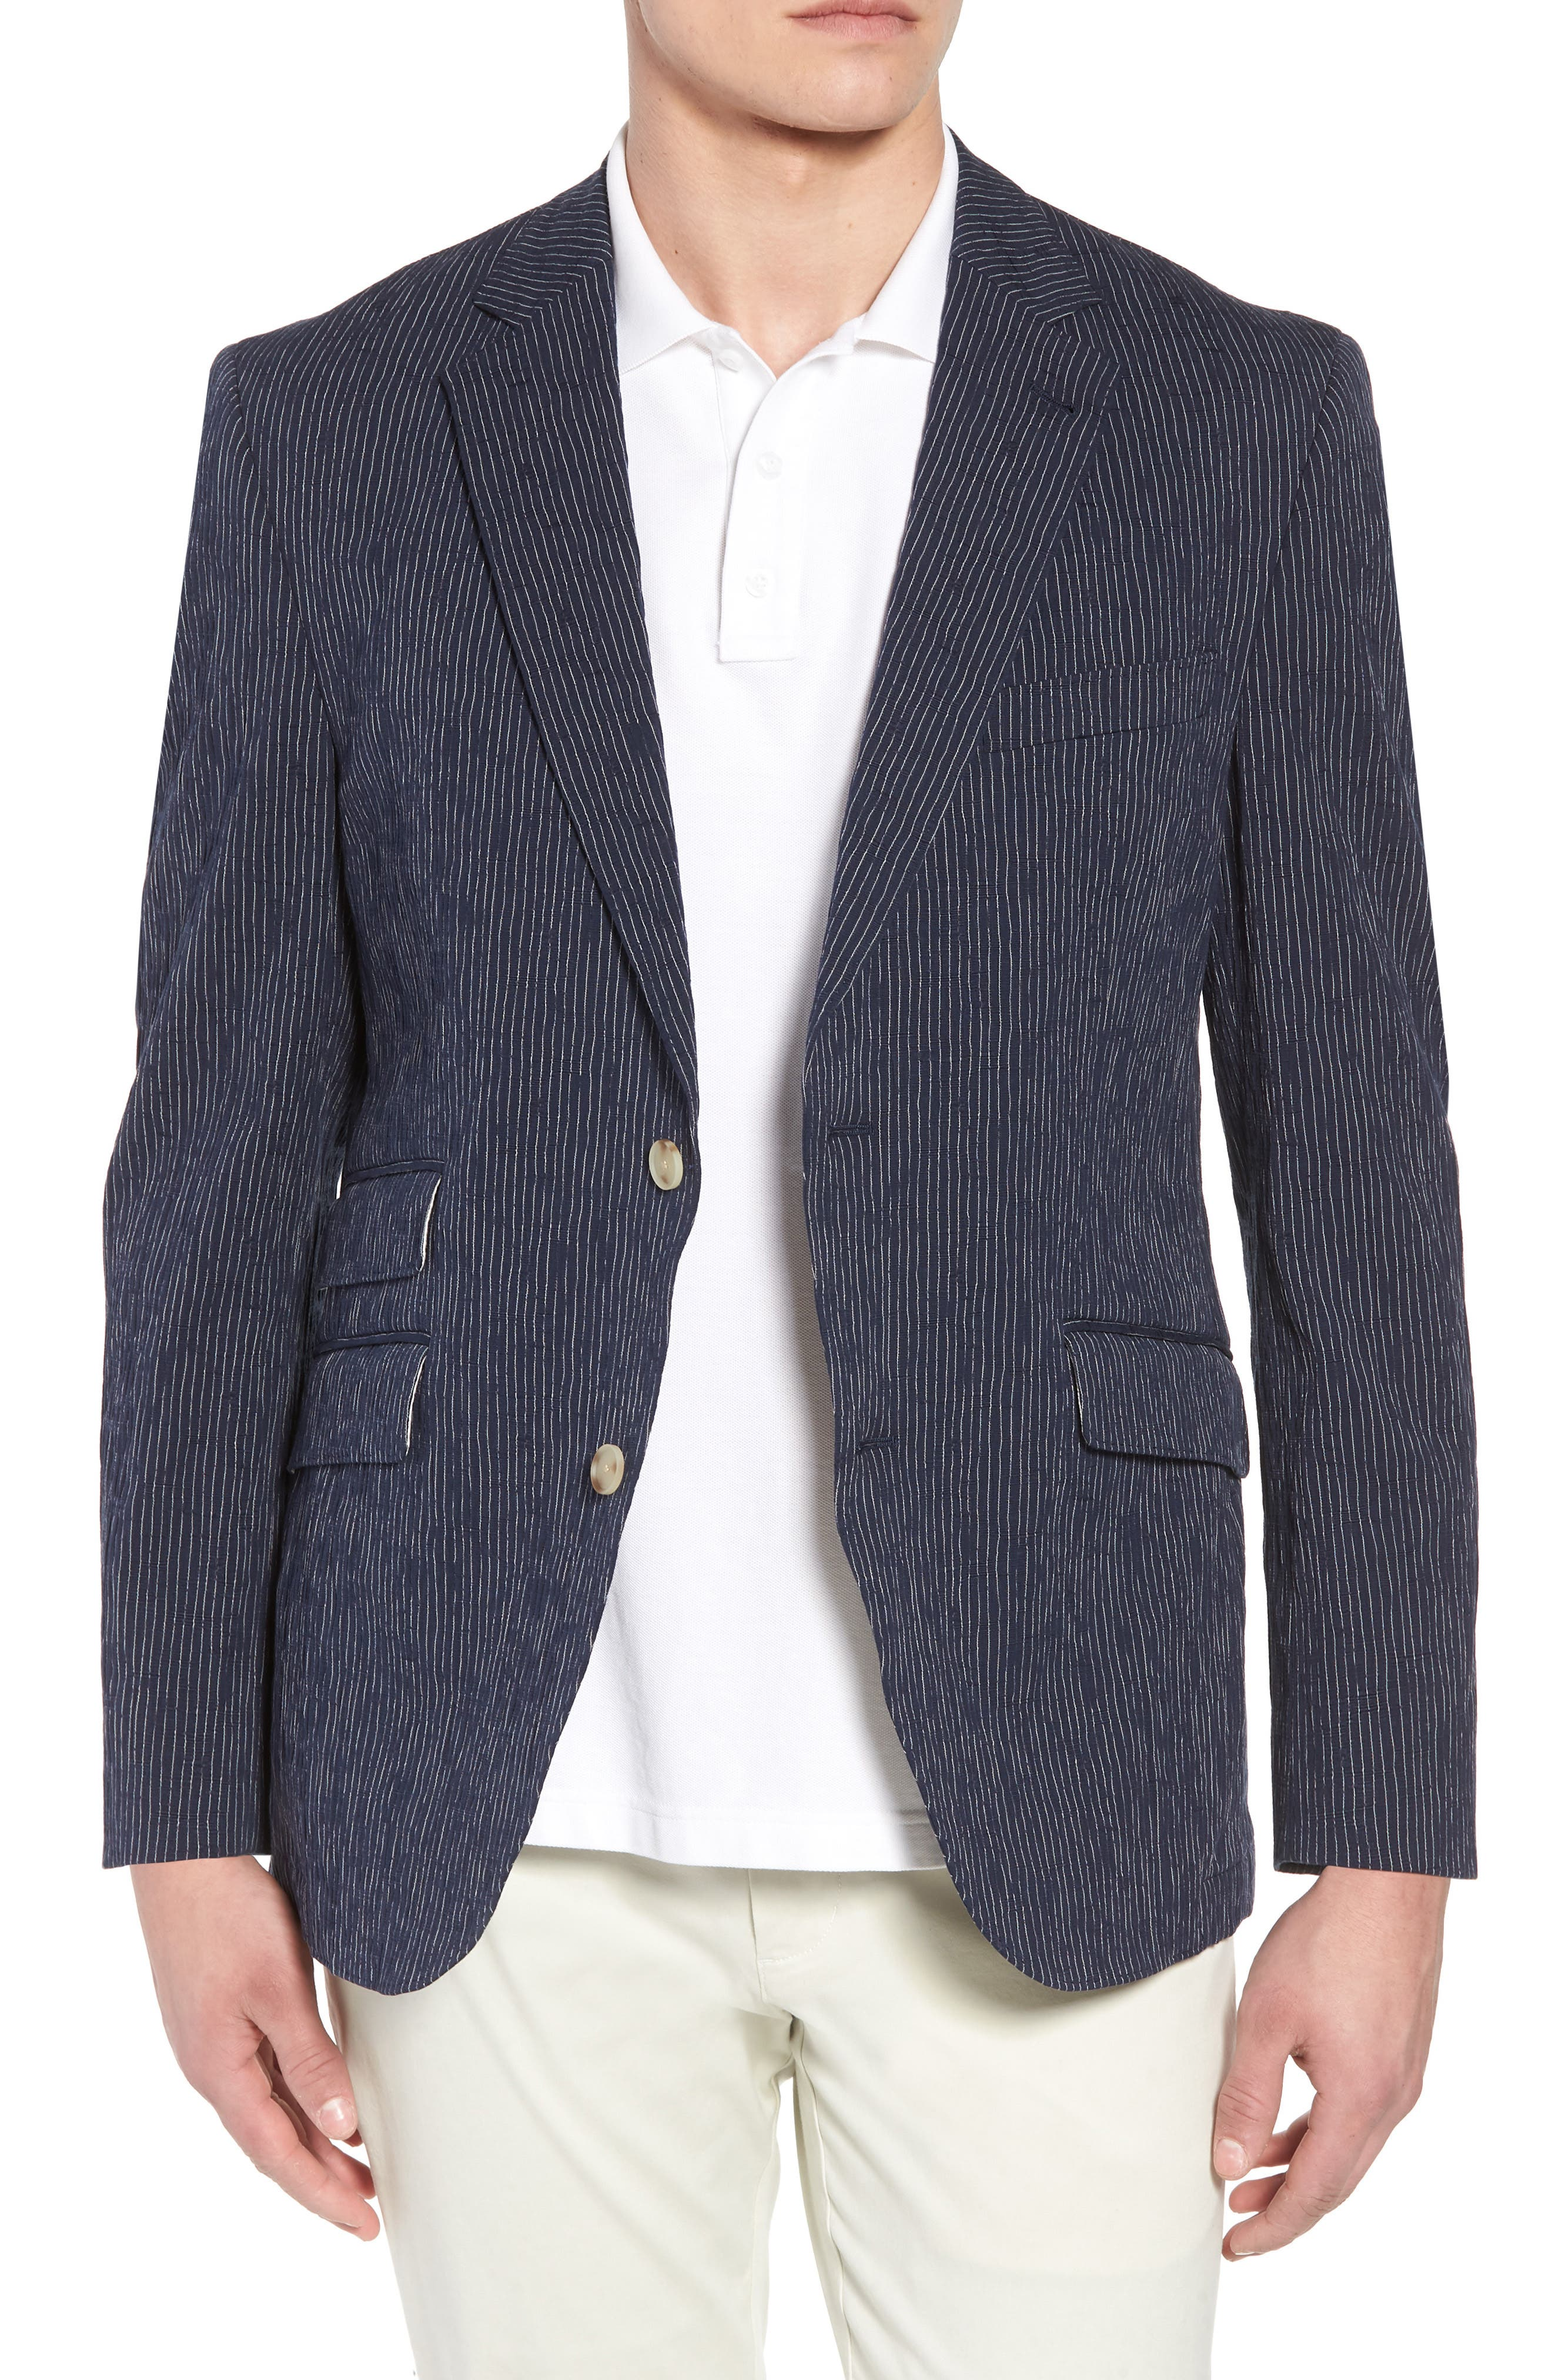 Sting AIM Classic Fit Stretch Stripe Cotton Sport Coat,                         Main,                         color, Navy